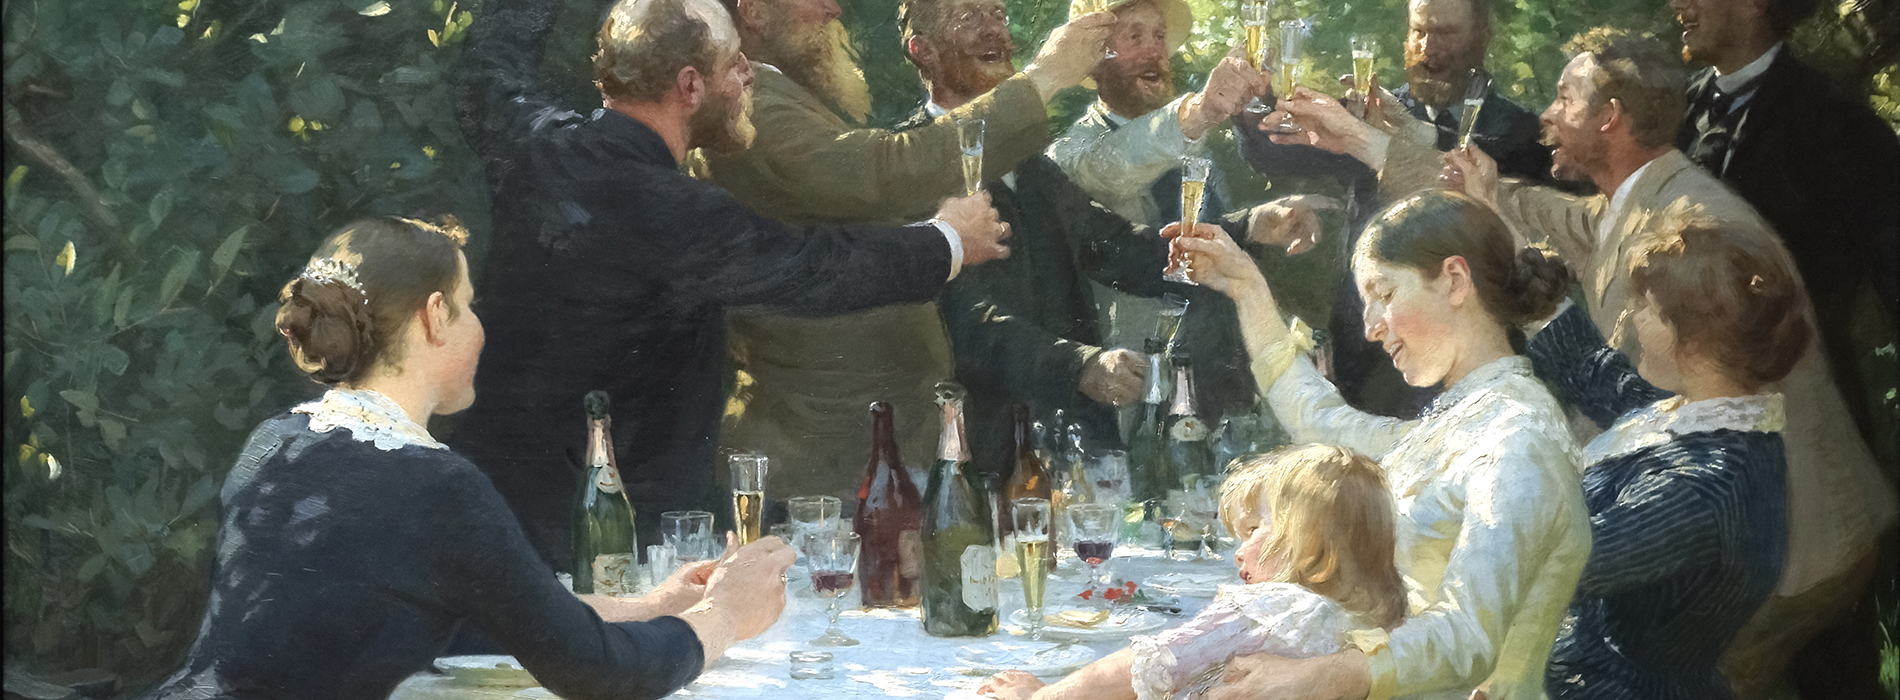 Convivial eating. Hipp hipp hurra Painting by Peder Severin Krøyer